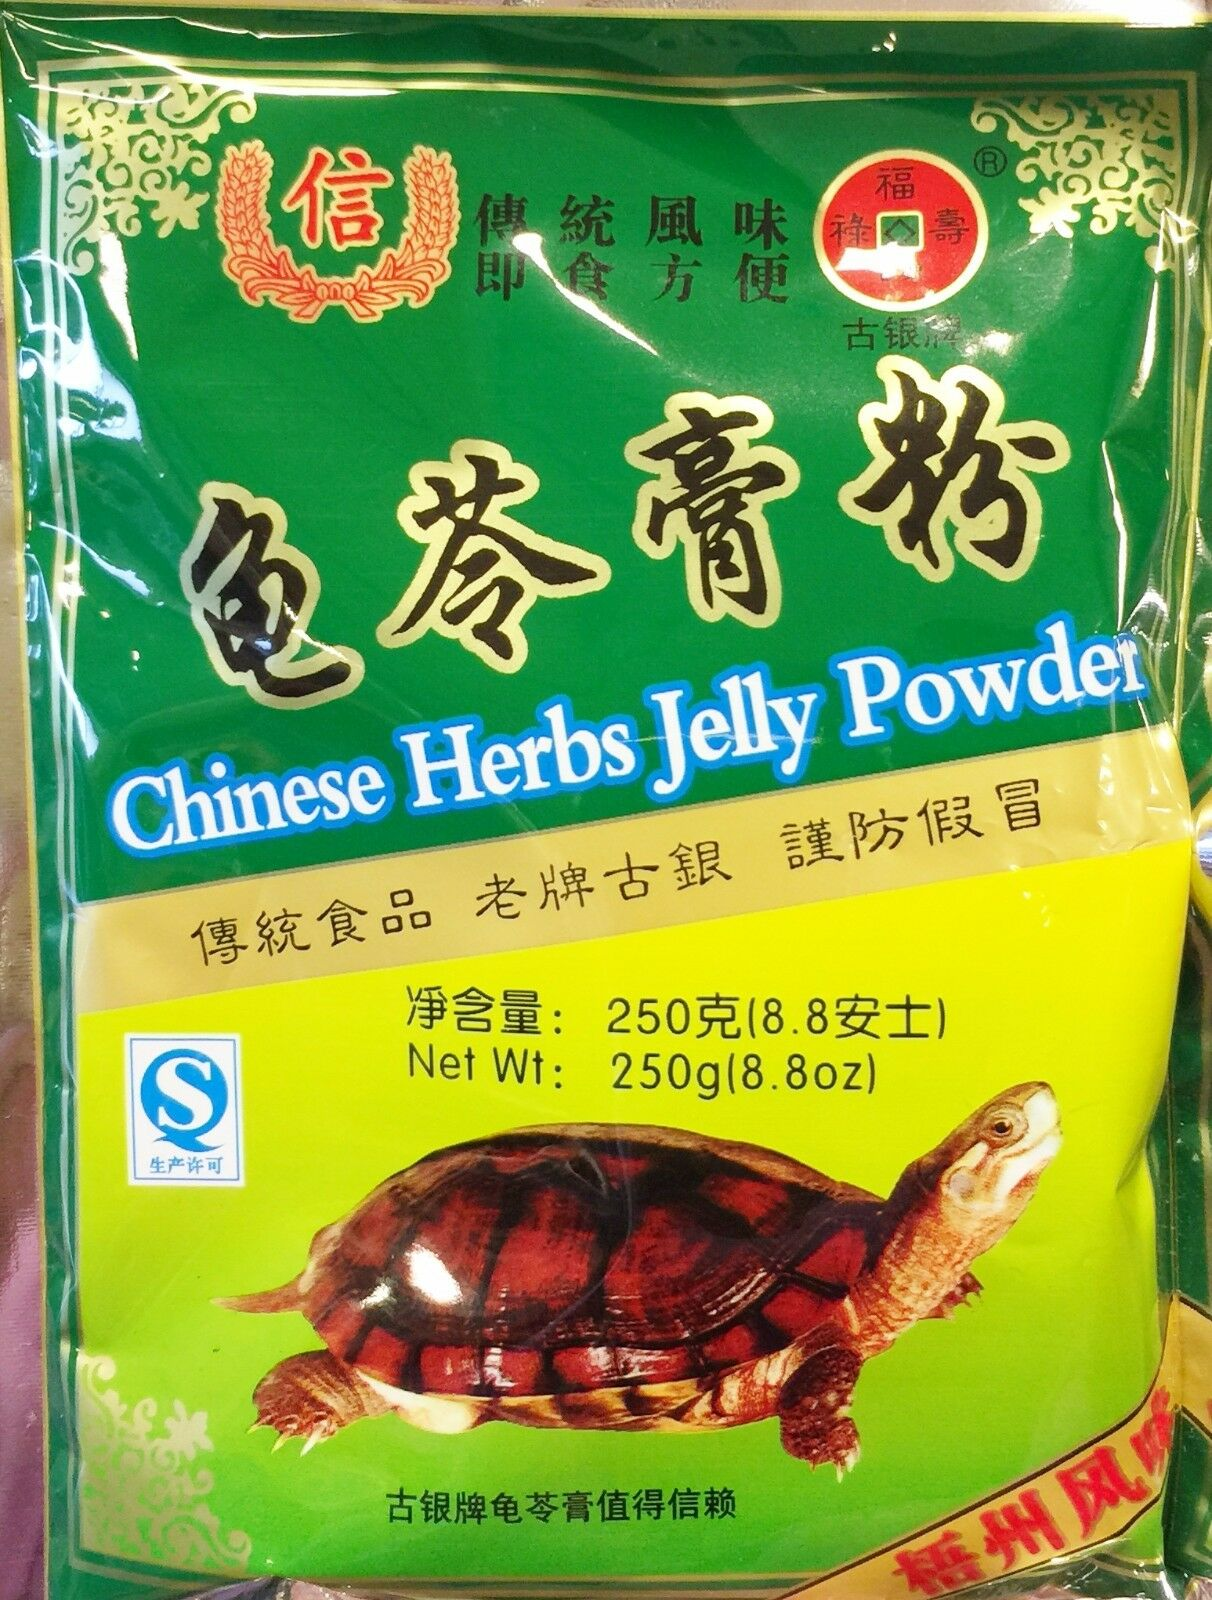 8.8oz Chinese Herbs Jelly Powder Gui Ling Gao by T & H Trading 1